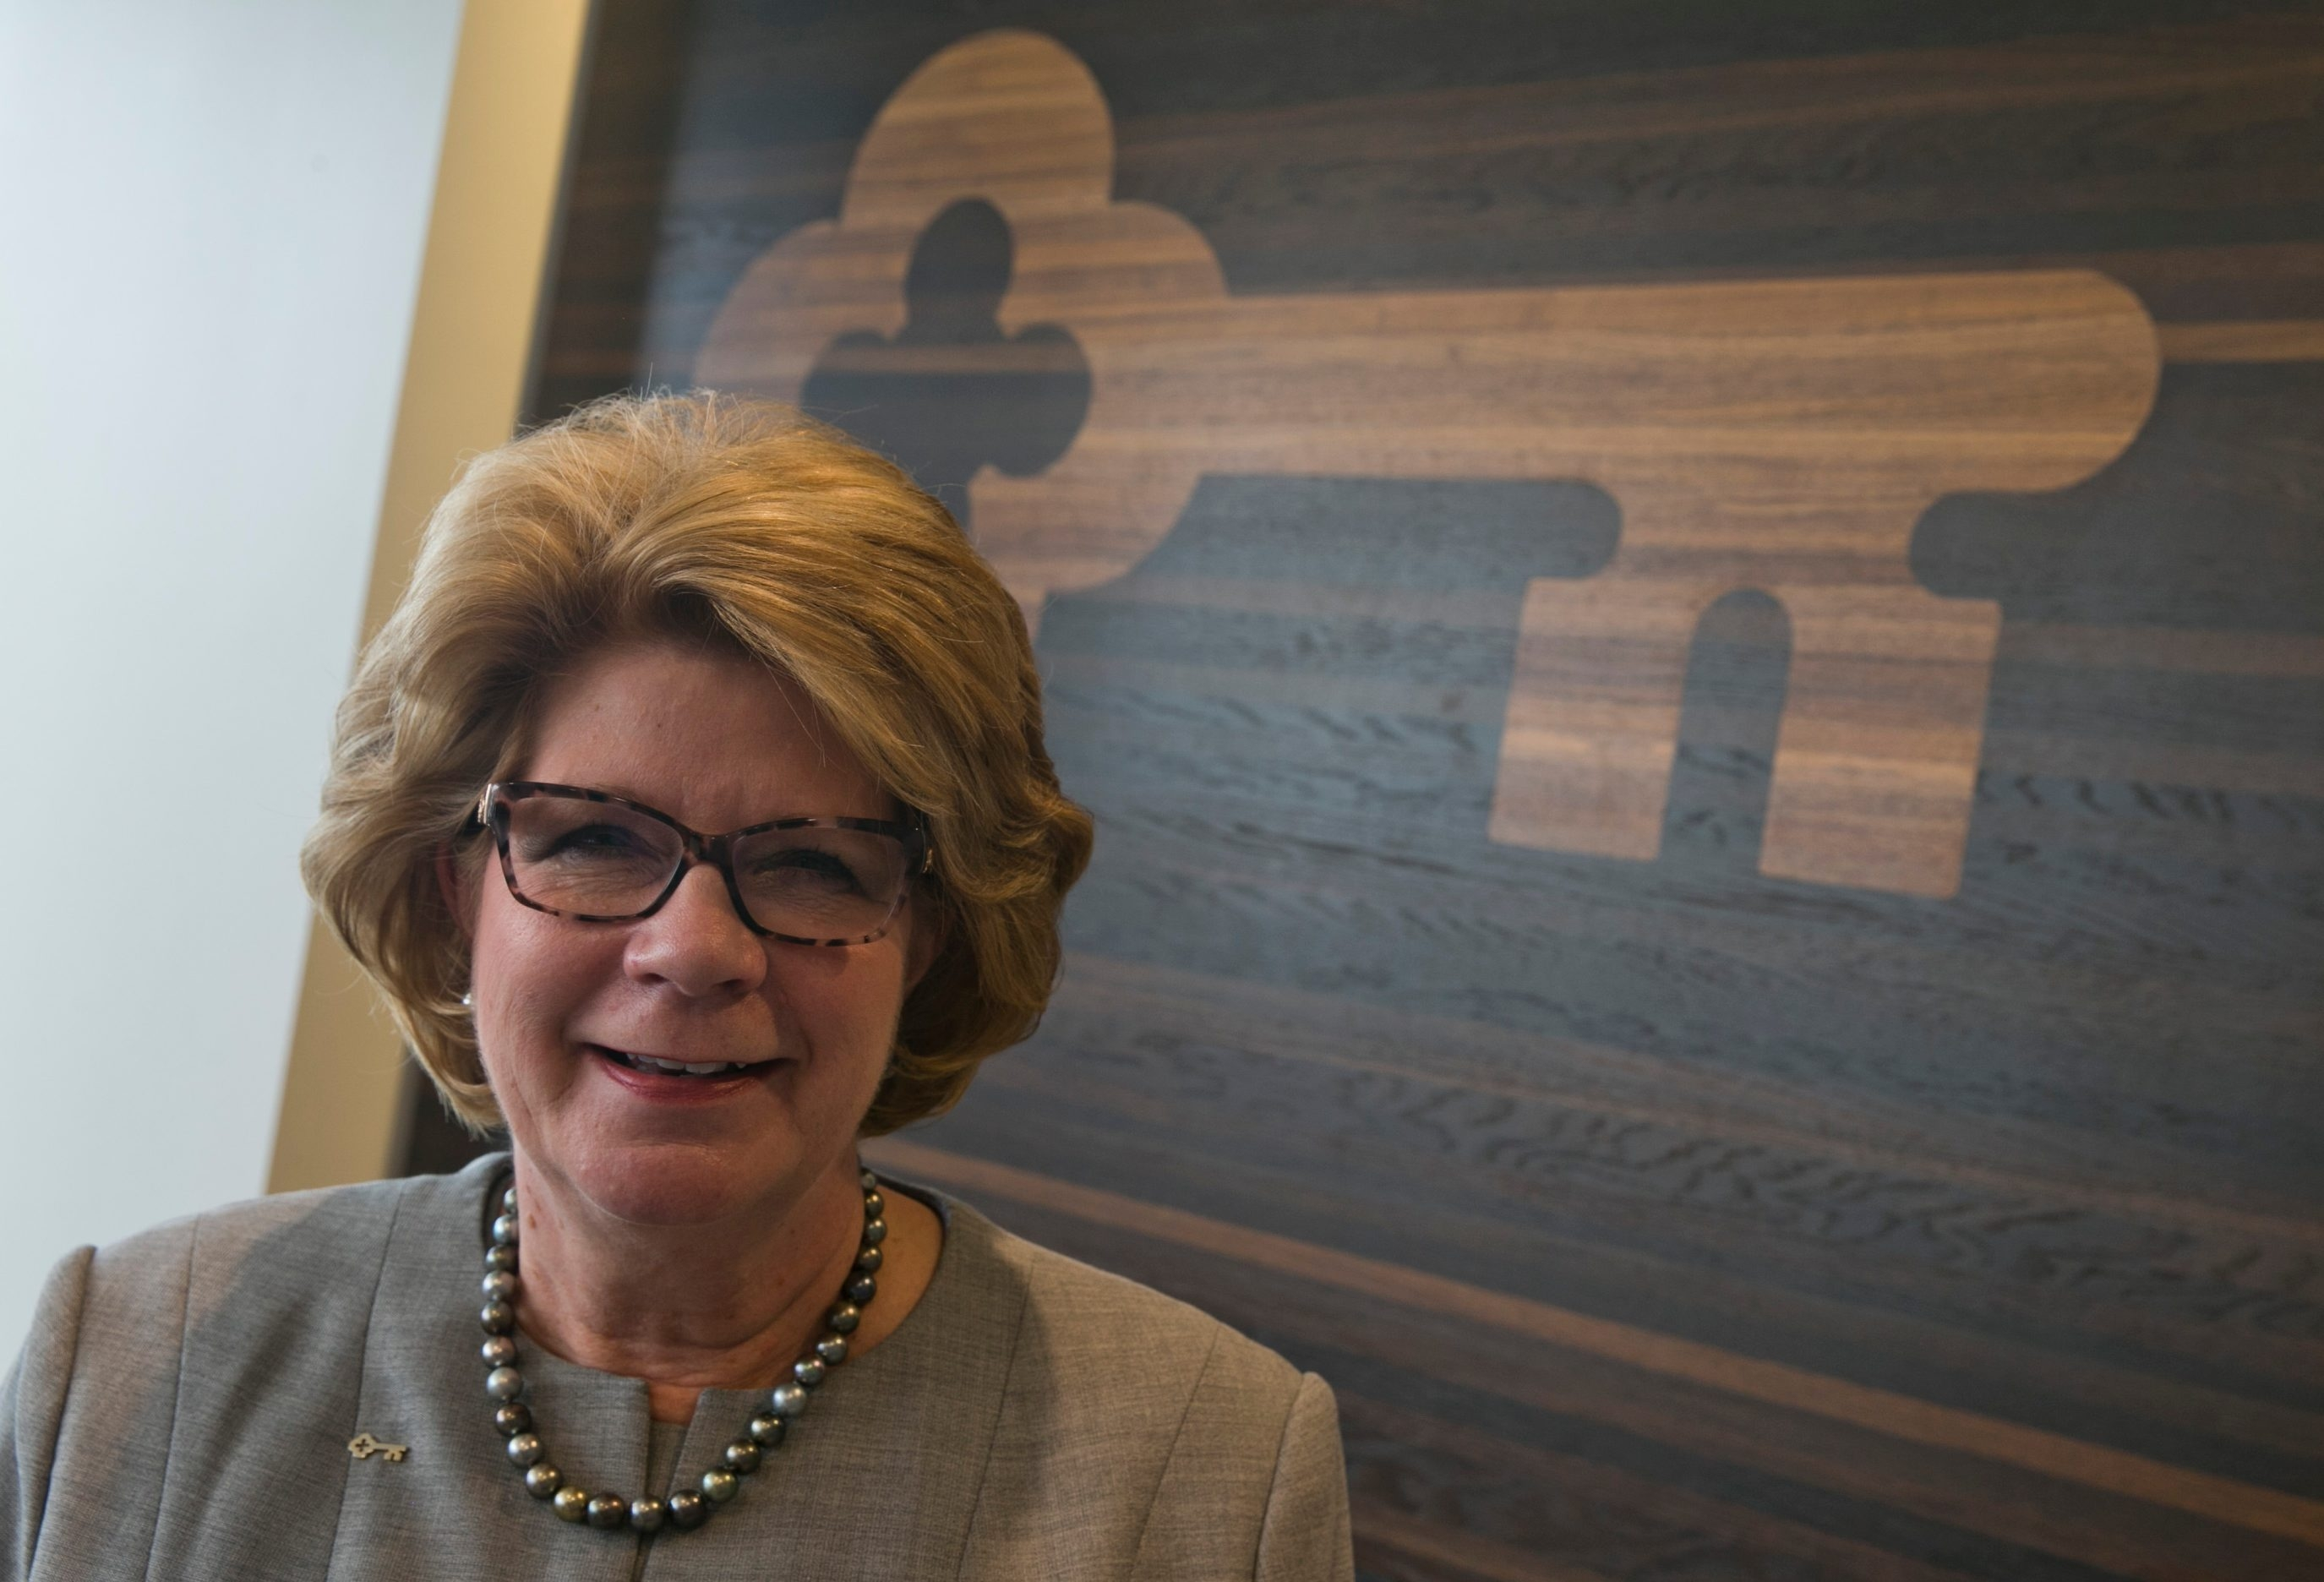 Chairman and Chief Executive Officer of KeyCorp Beth Mooney at KeyBank offices at 250 Delaware Ave. (John Hickey/Buffalo News)